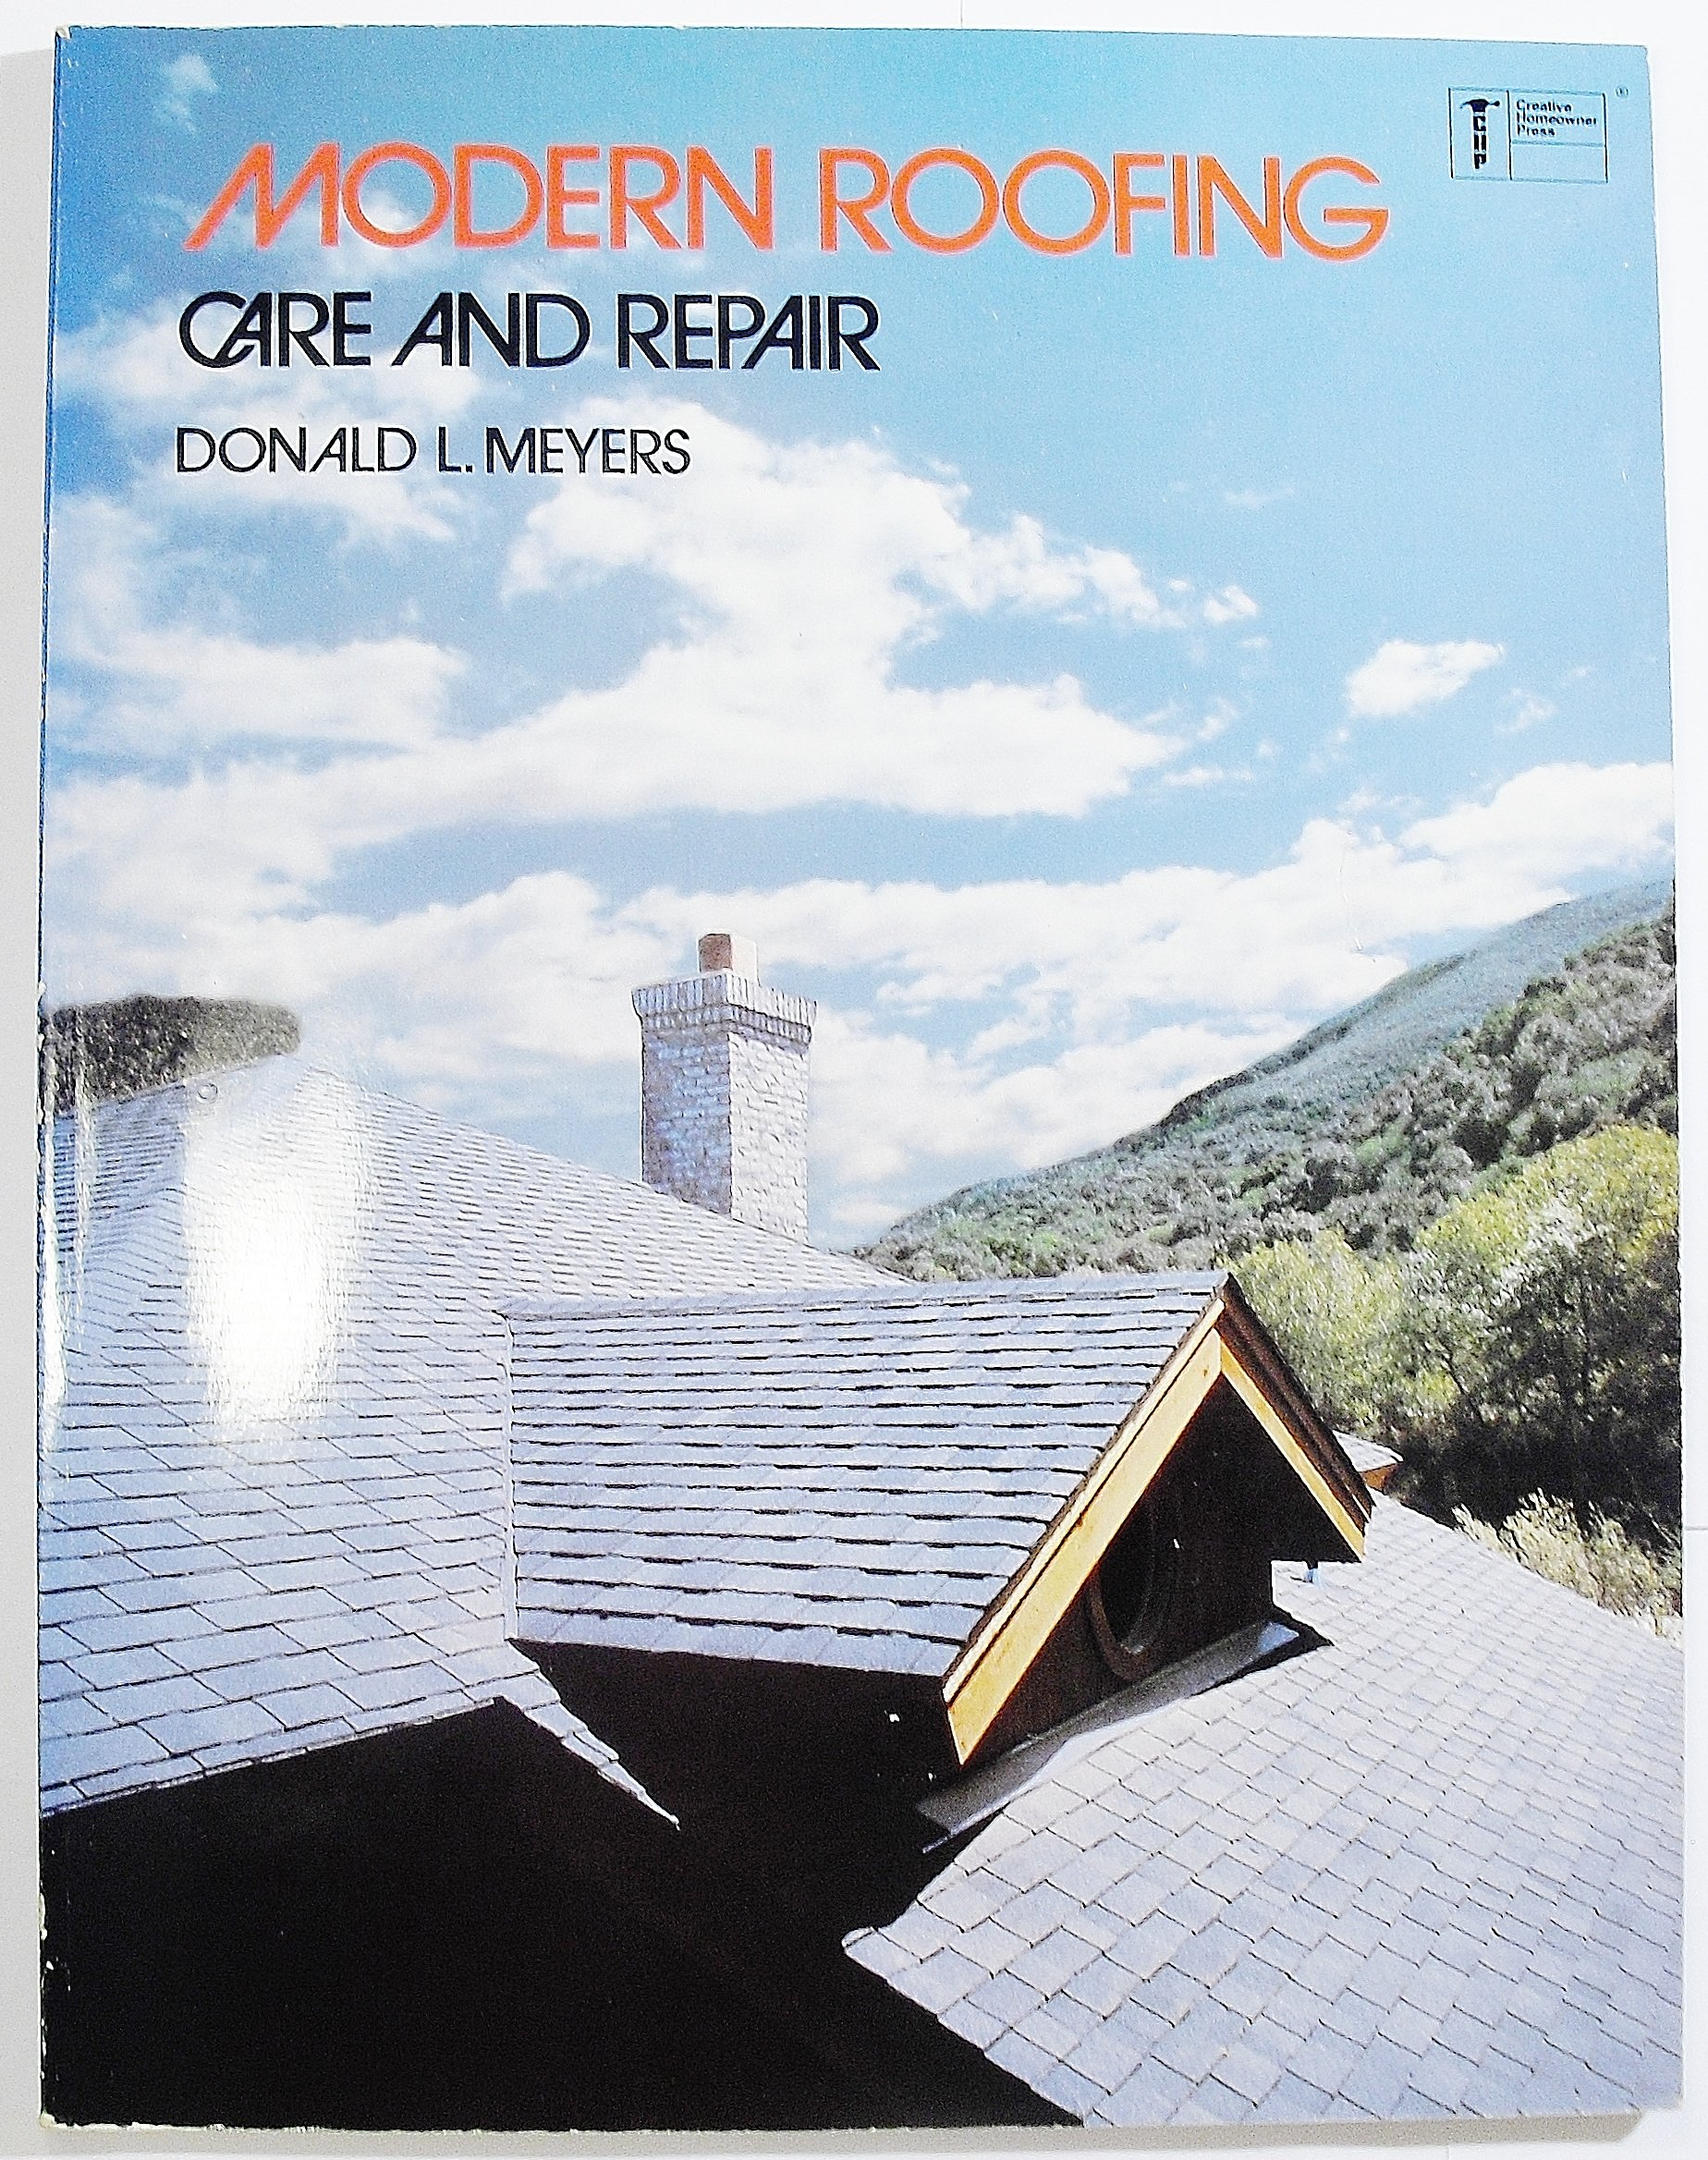 Modern Roofing: Care and Repair